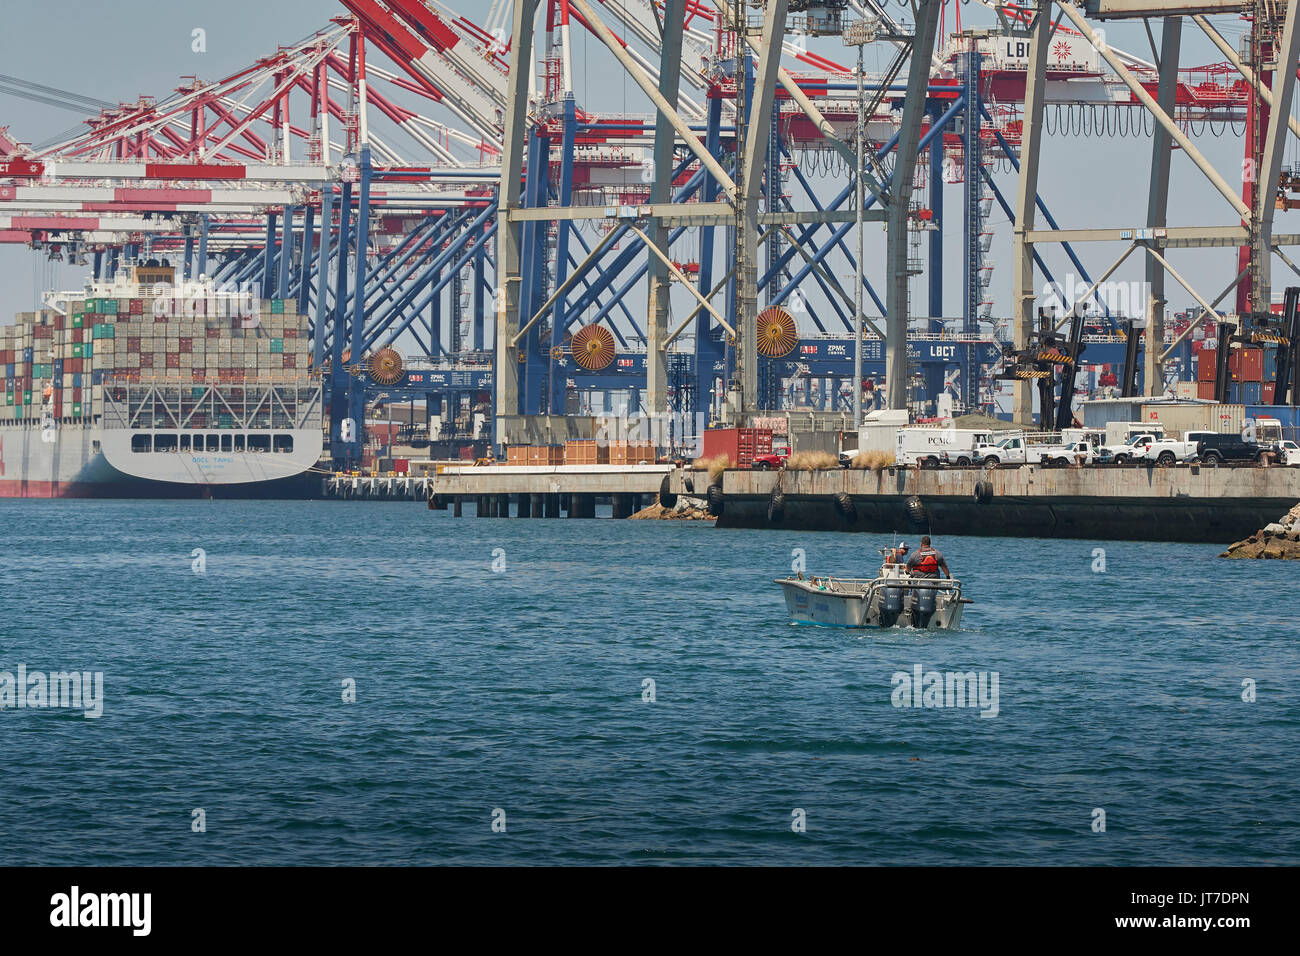 Sports Fishermen Fishing In The Long Beach Container Terminal, California. - Stock Image